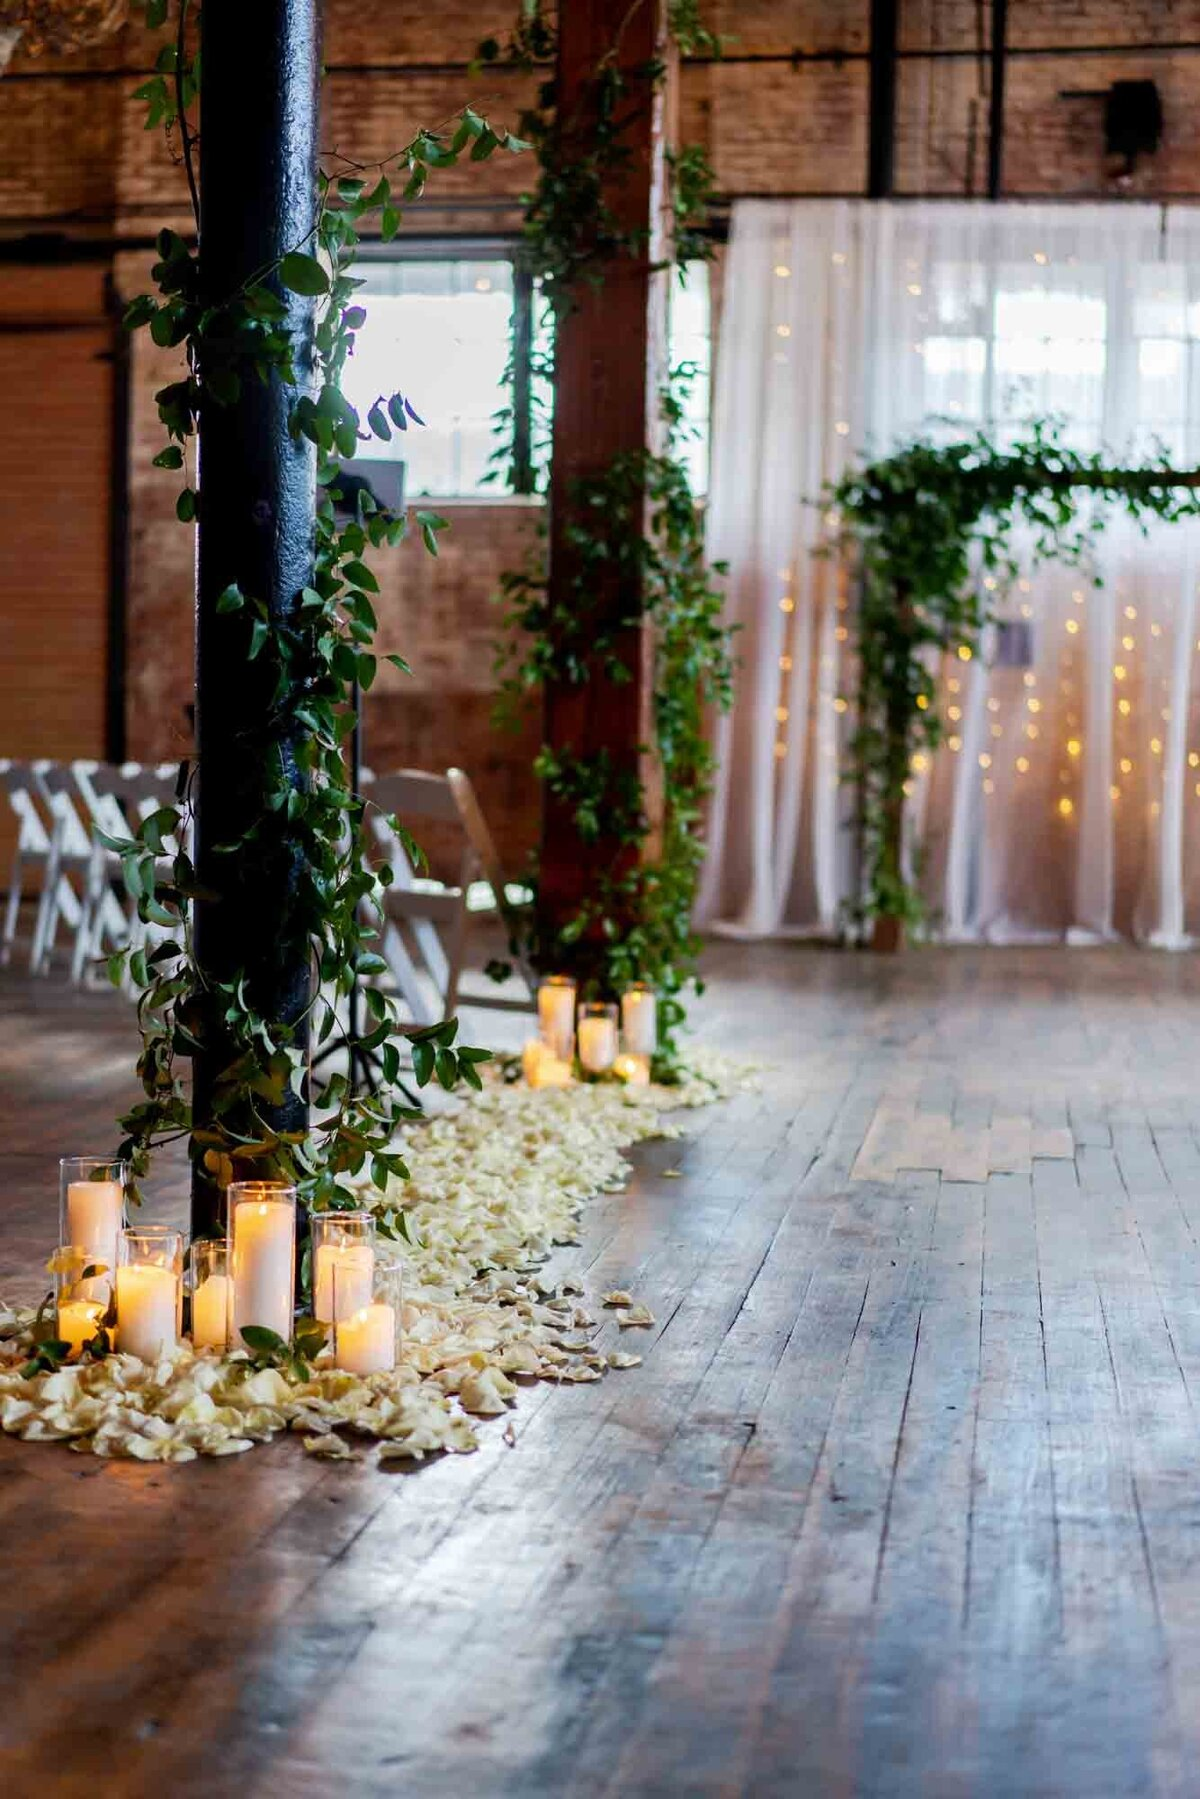 East-McKinney-Luxury-Wedding-Venue-Dallas-Fort-Worth-McKinney-Texas-37